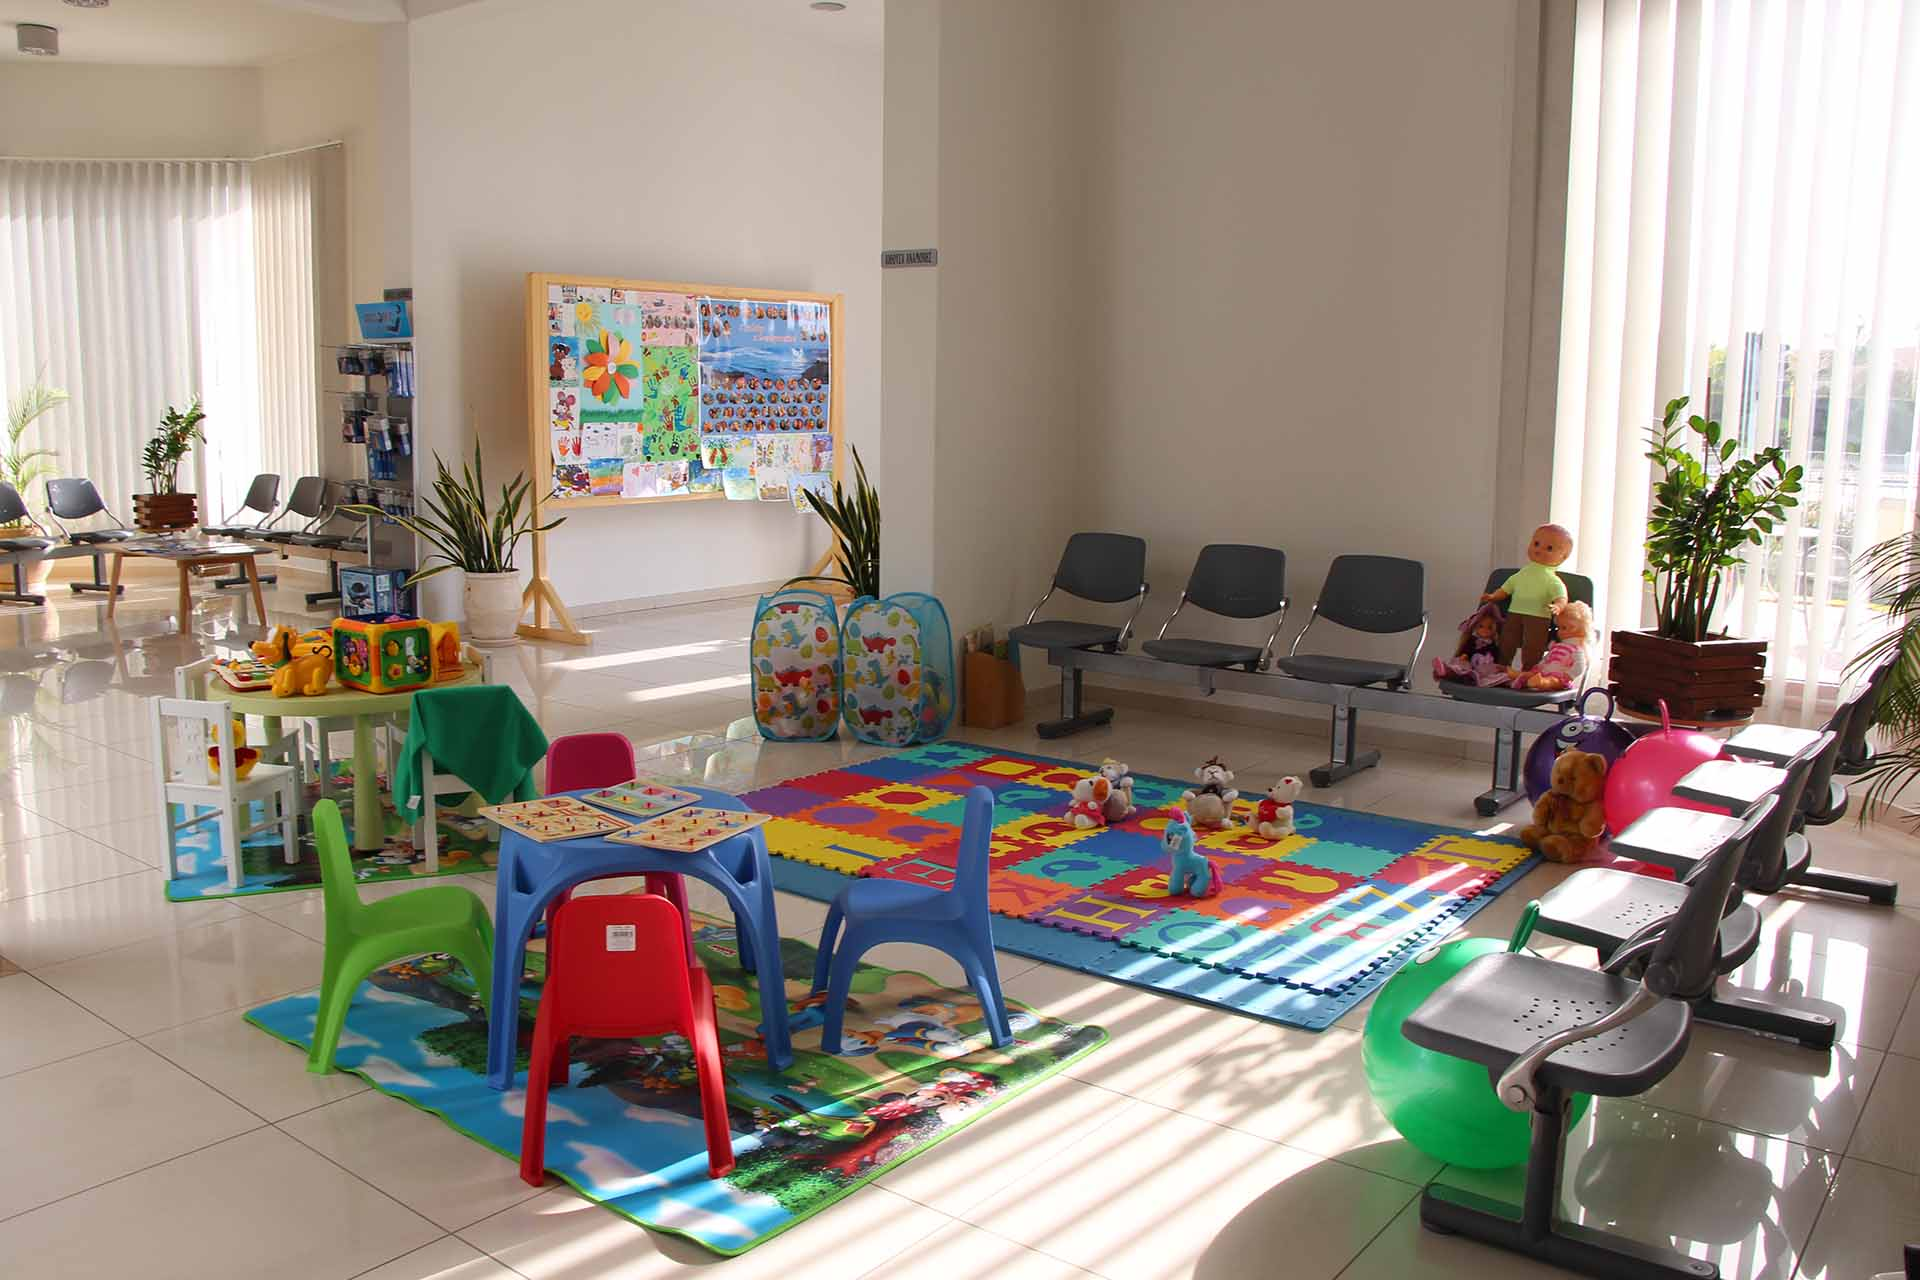 Toumazi Physio Gallery - Kids therapy